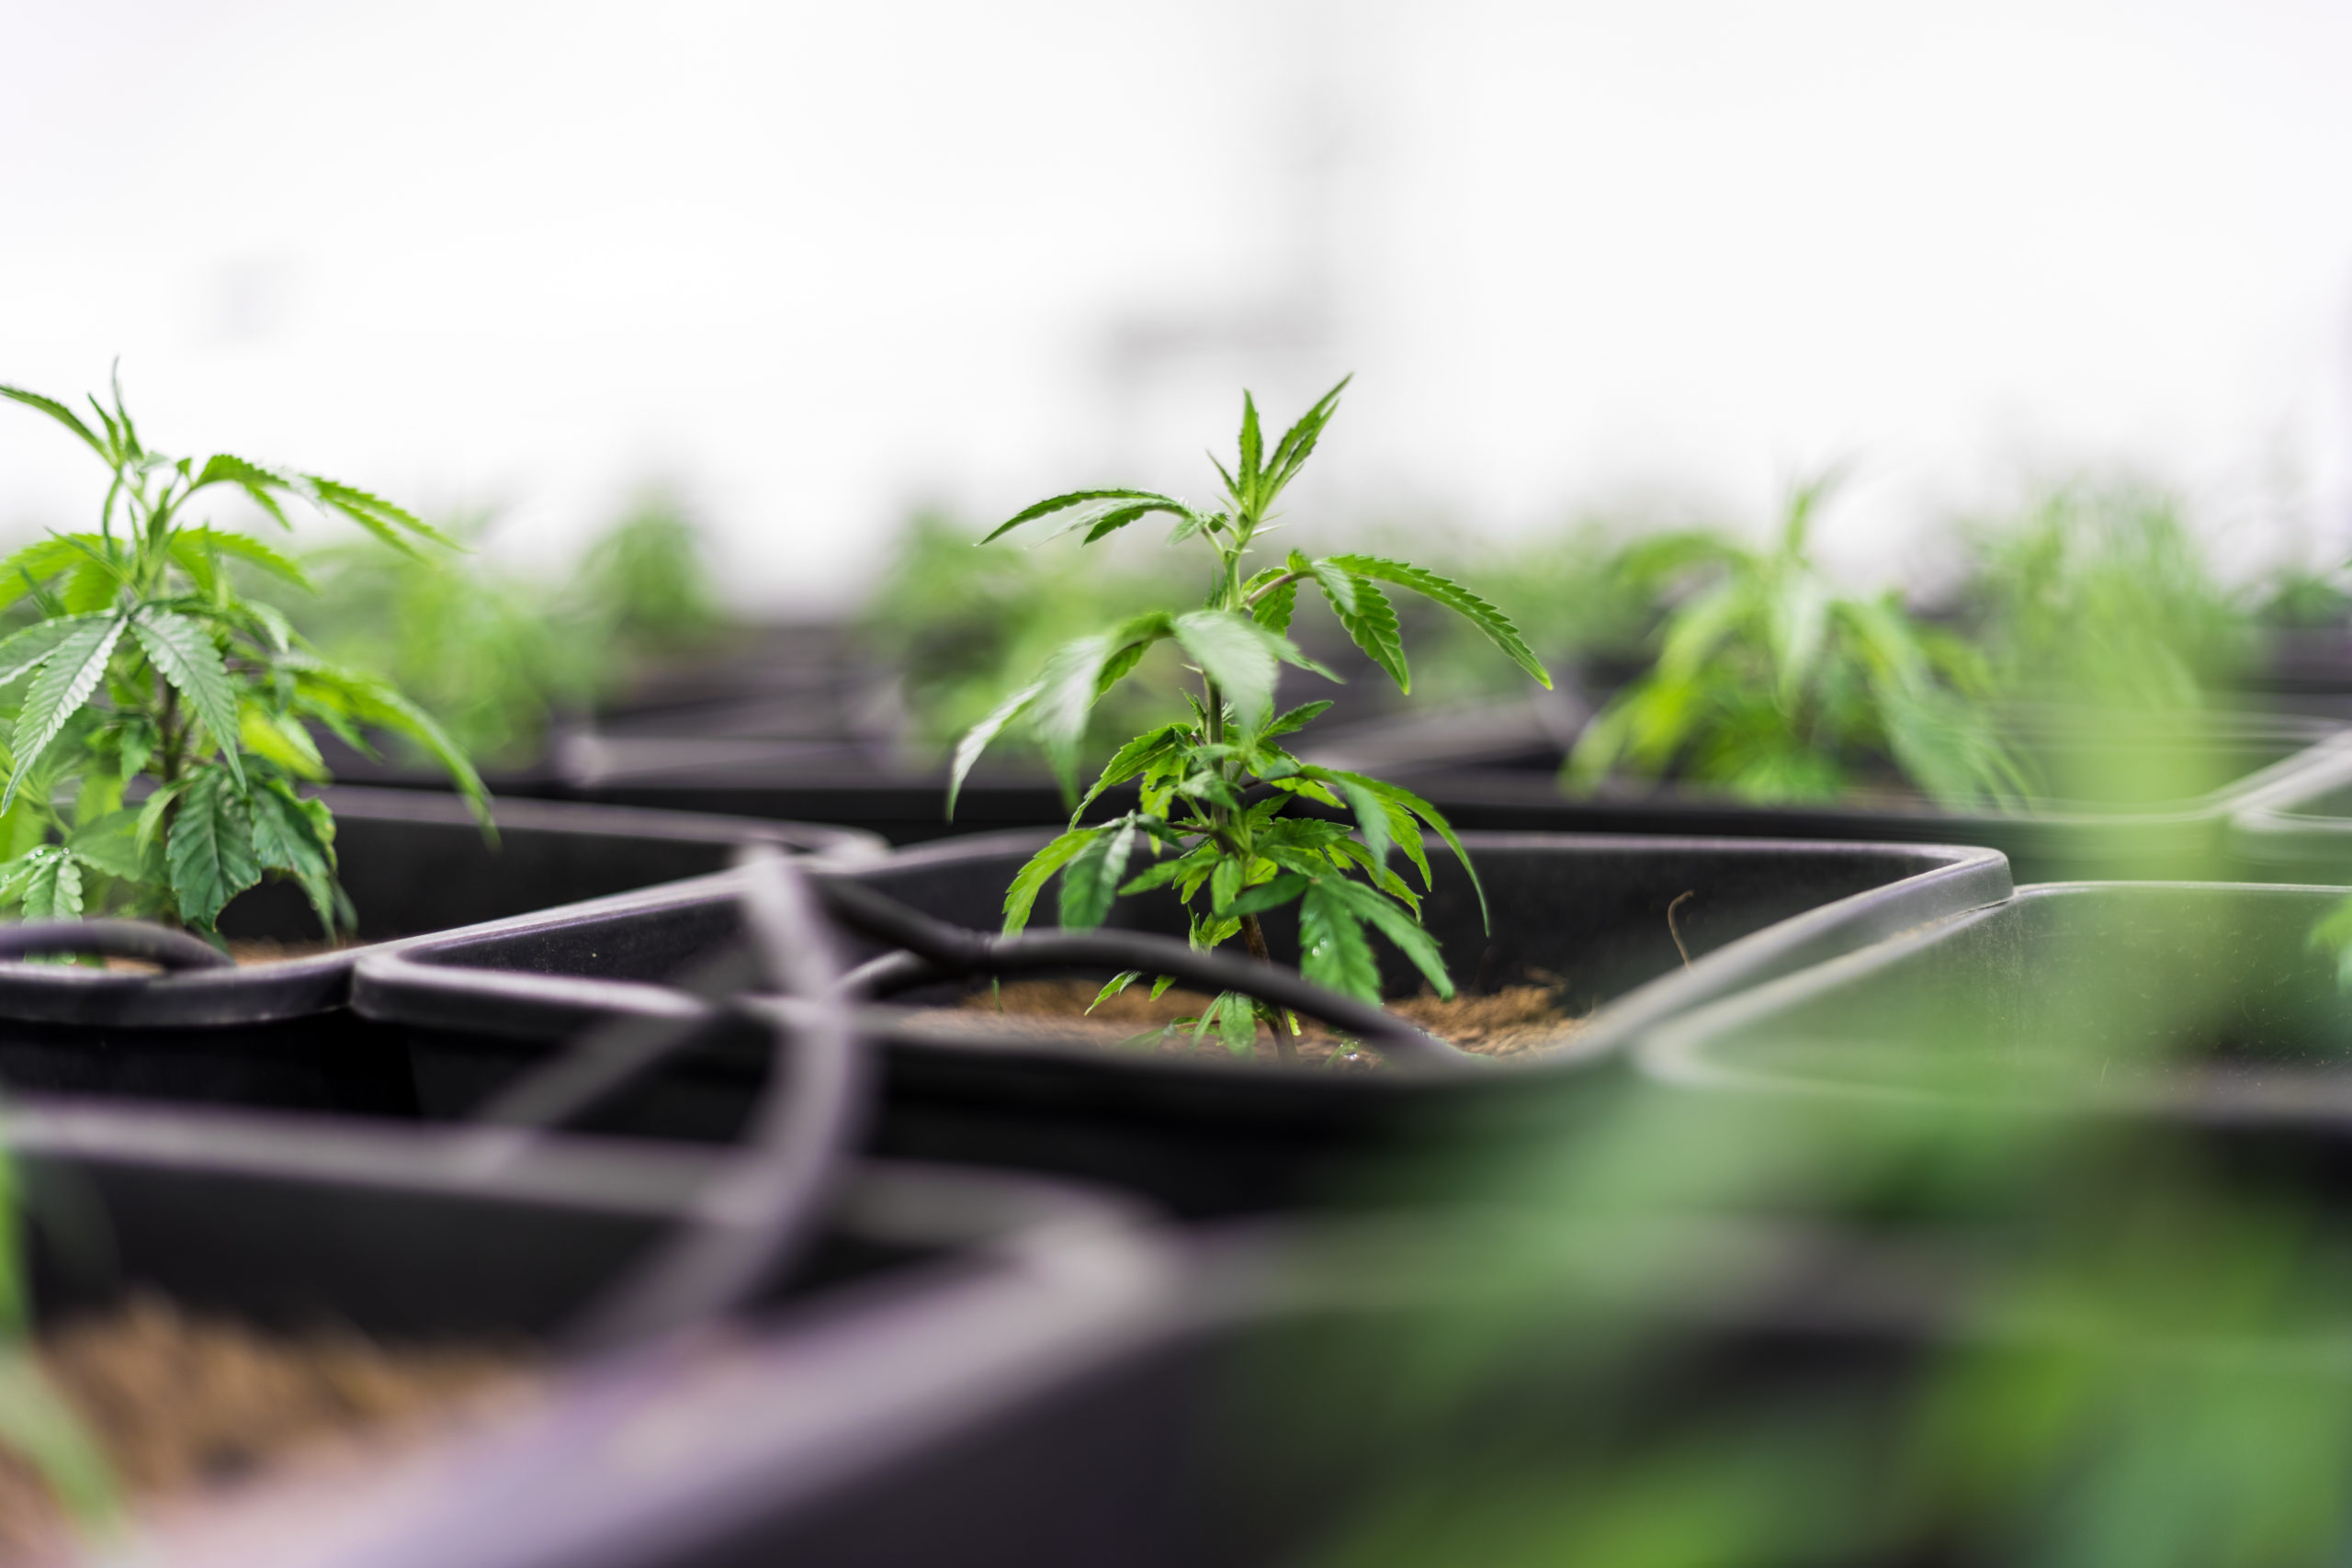 What MedMen's Exit From Arizona Marijuana Market Means for Legalization in 2020.